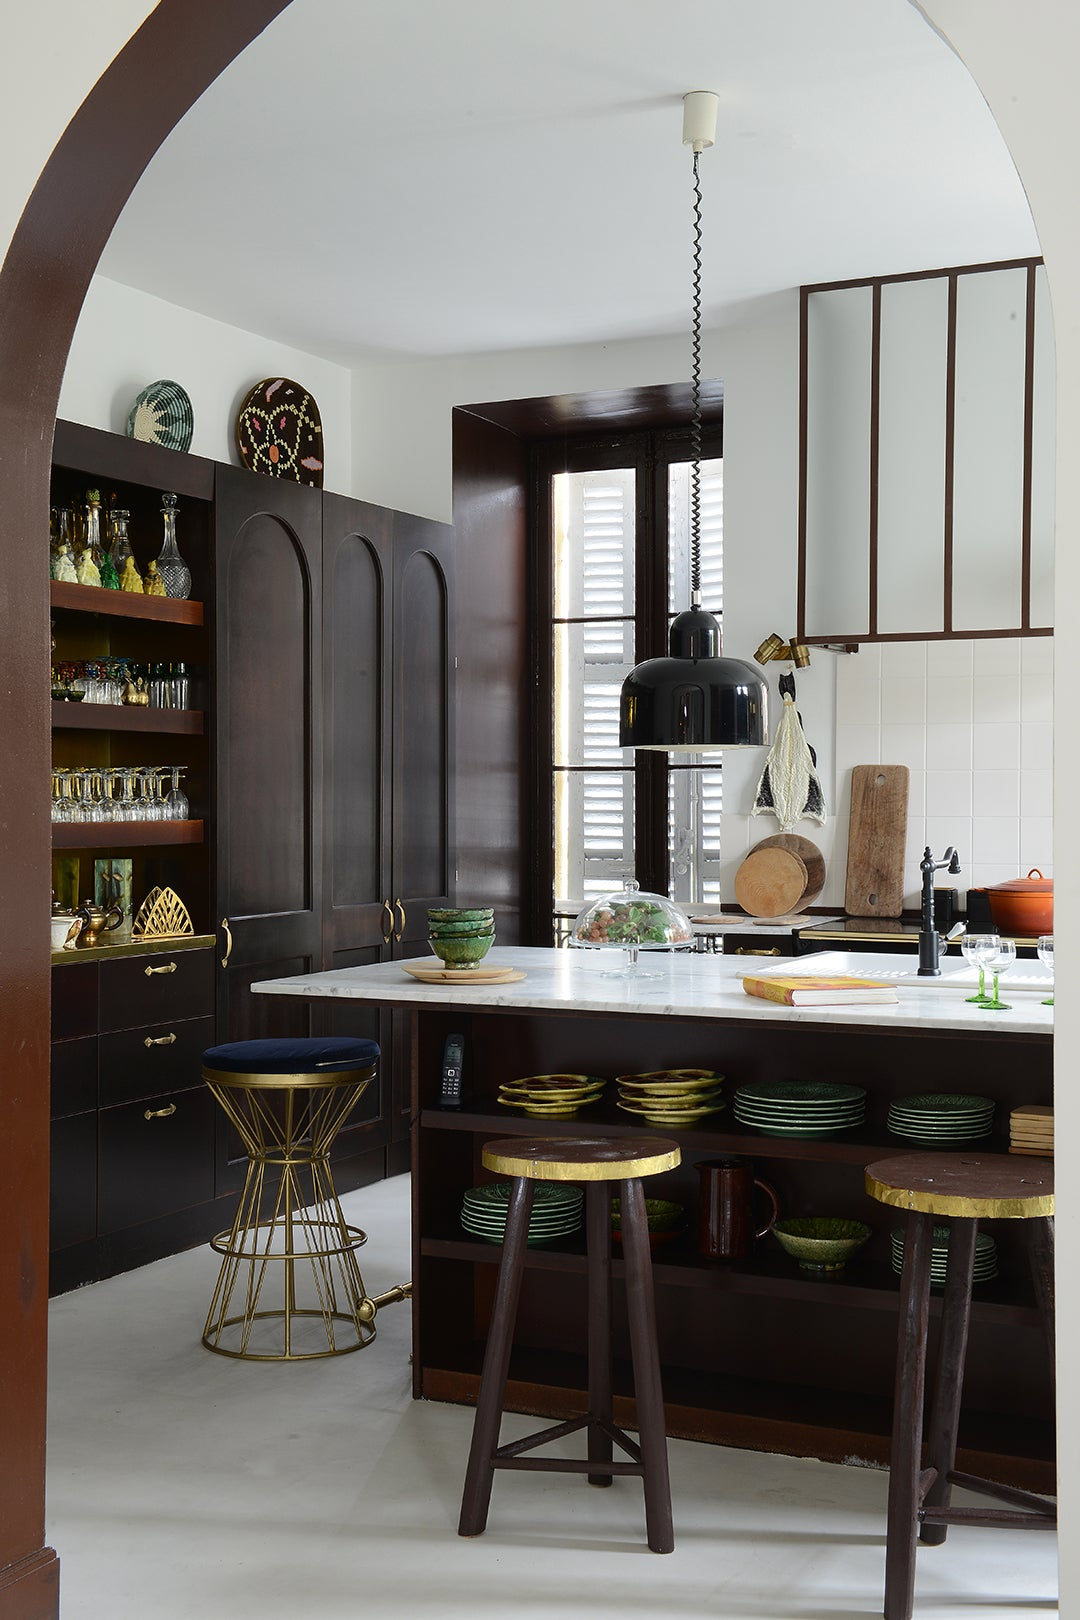 dark wood kitchen with lots of ceramic plates